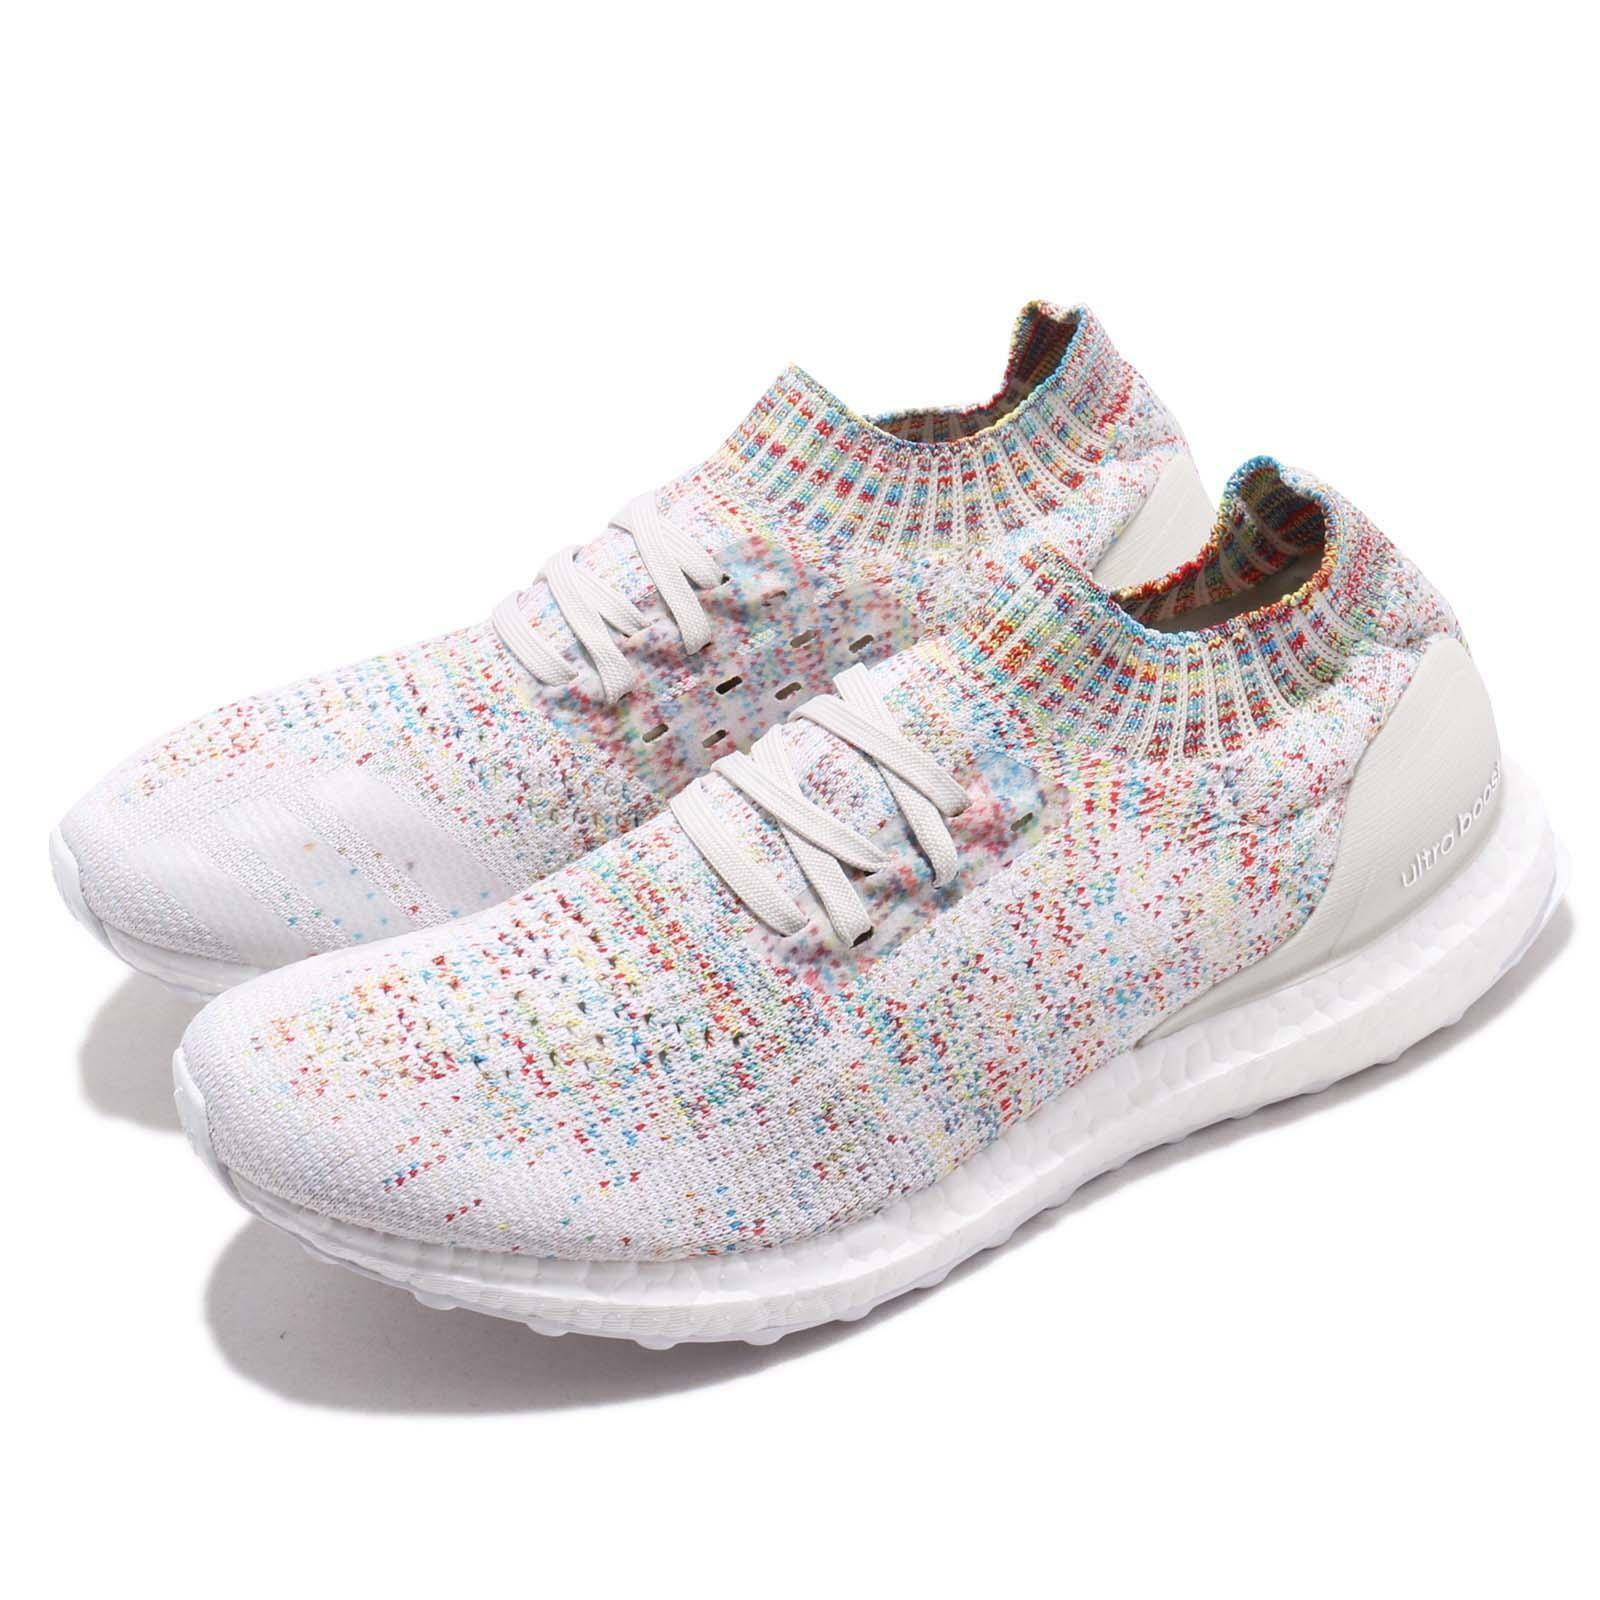 Zapatillas adidas Ultraboost blanco estampado multicolor